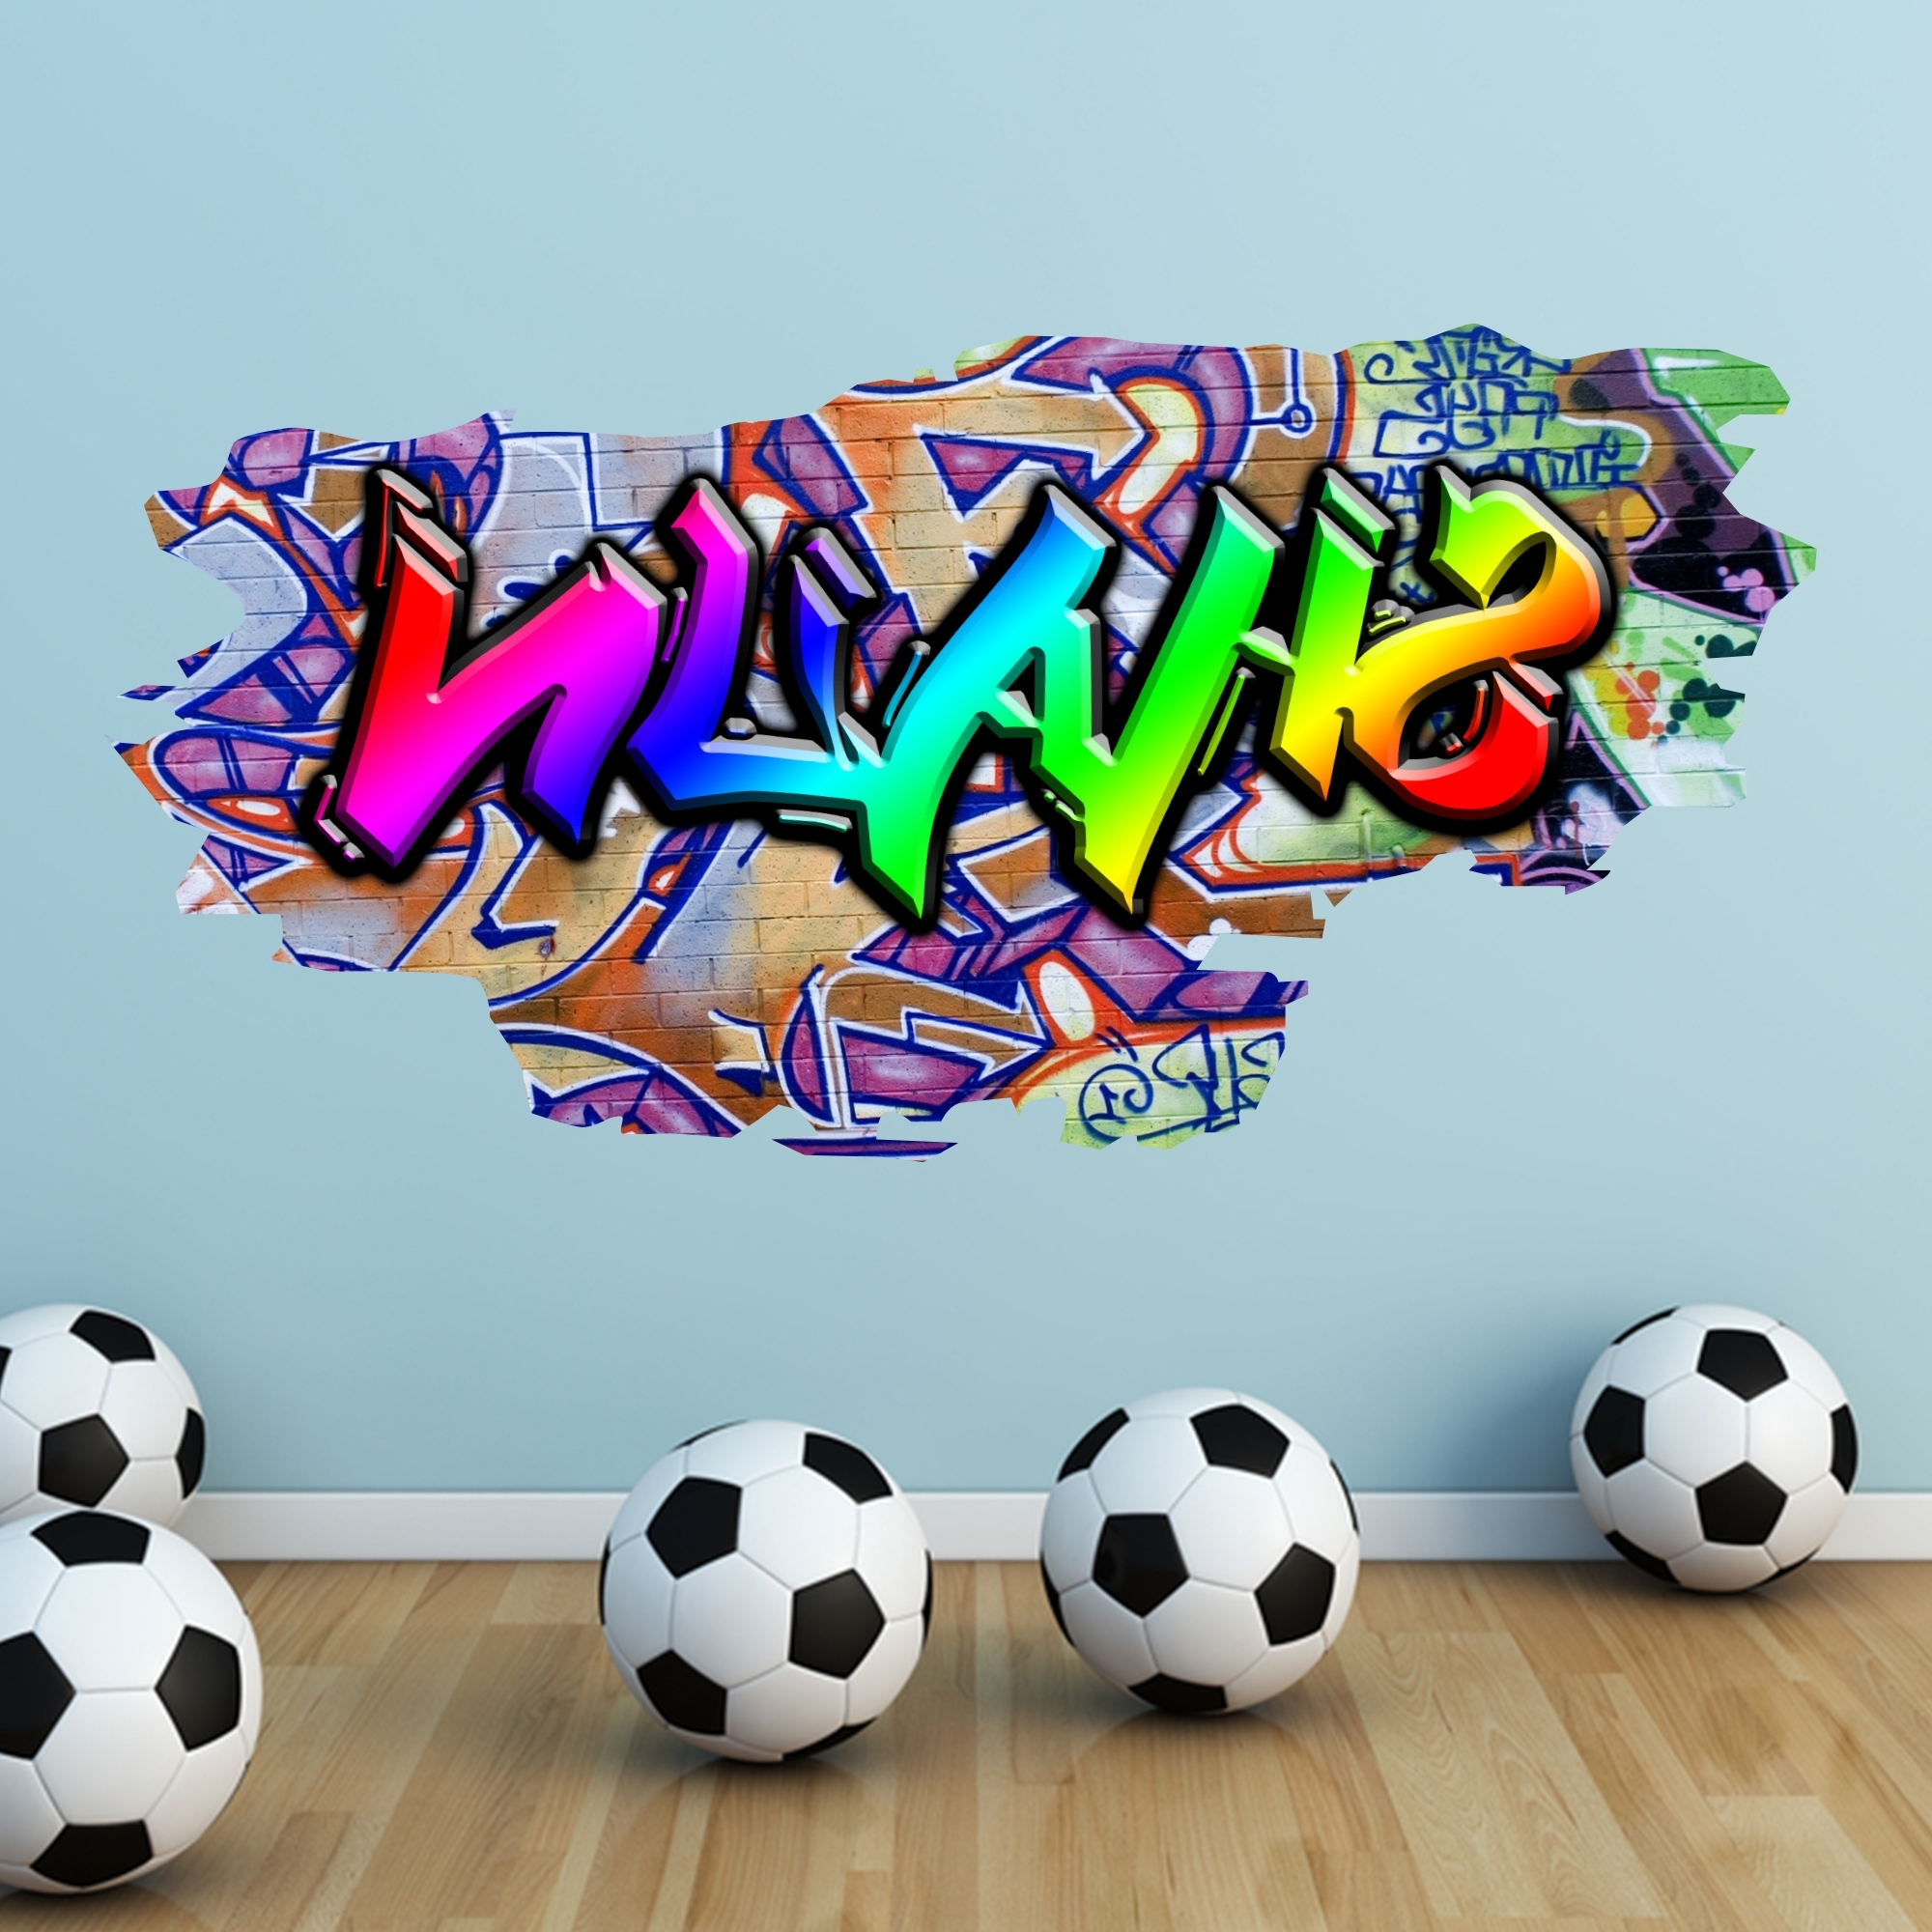 Widely Used Graffiti Wall Art Stickers For Personalised Graffiti Wall Stickers Australia – Neon Uv (View 15 of 15)